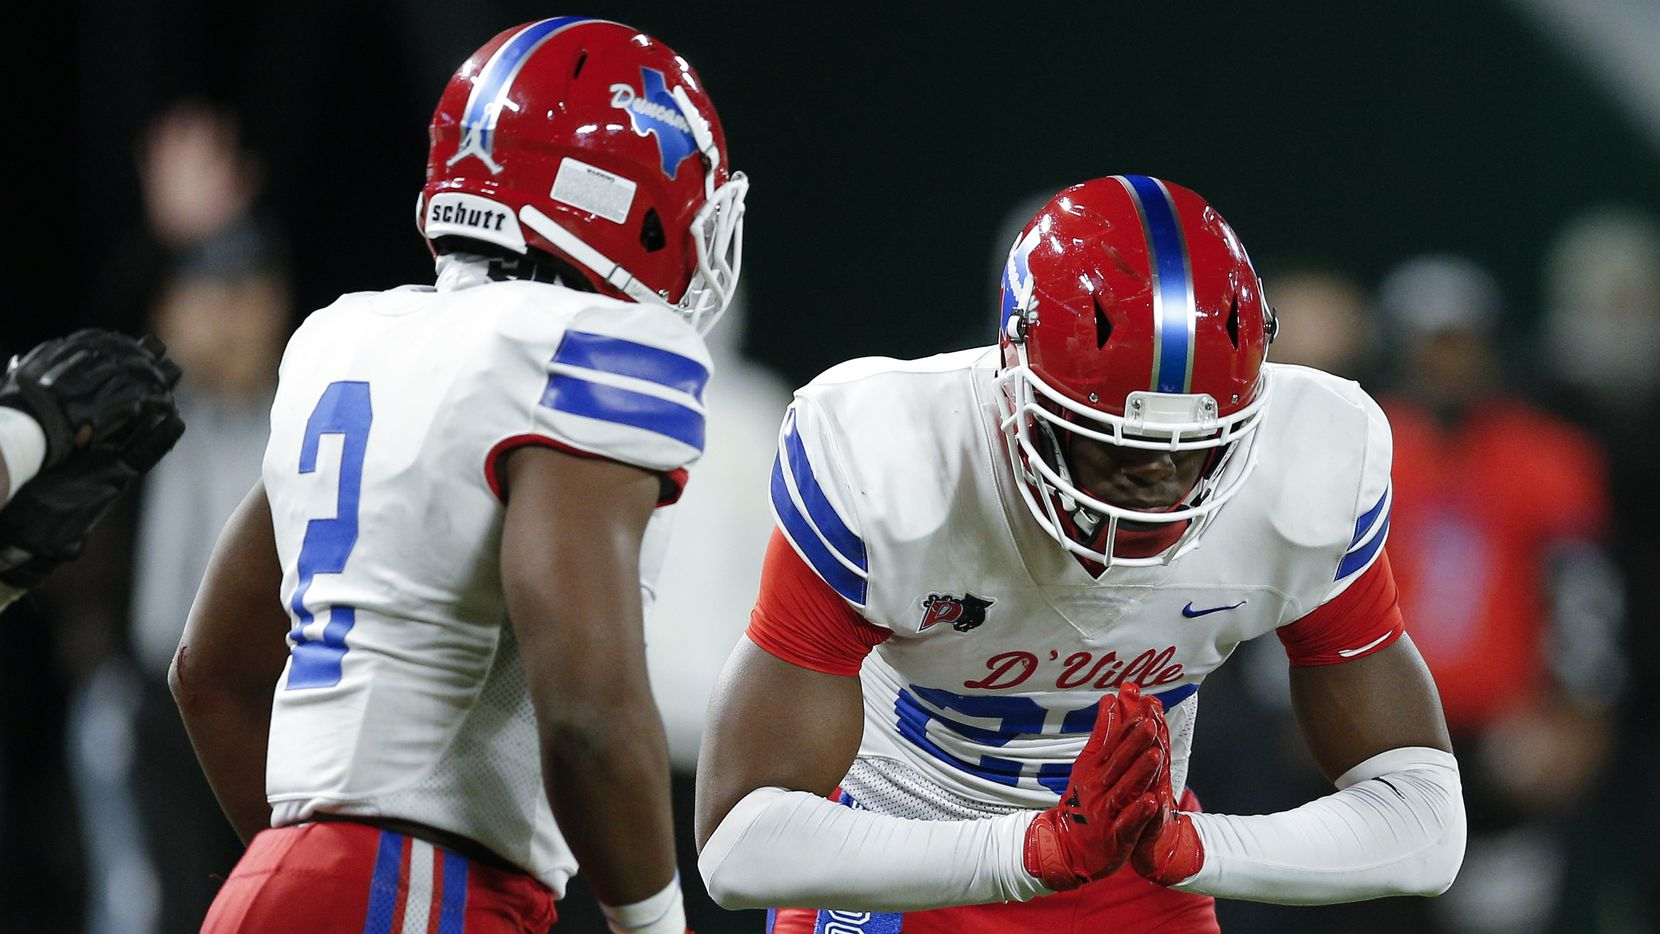 Duncanville junior linebacker Jordan Crook (2) looks on as junior defensive end Omari Abor (23) celebrates a sack during the first half of a Class 6A Division I Region II final high school football game against DeSoto, Saturday, January 2, 2021.